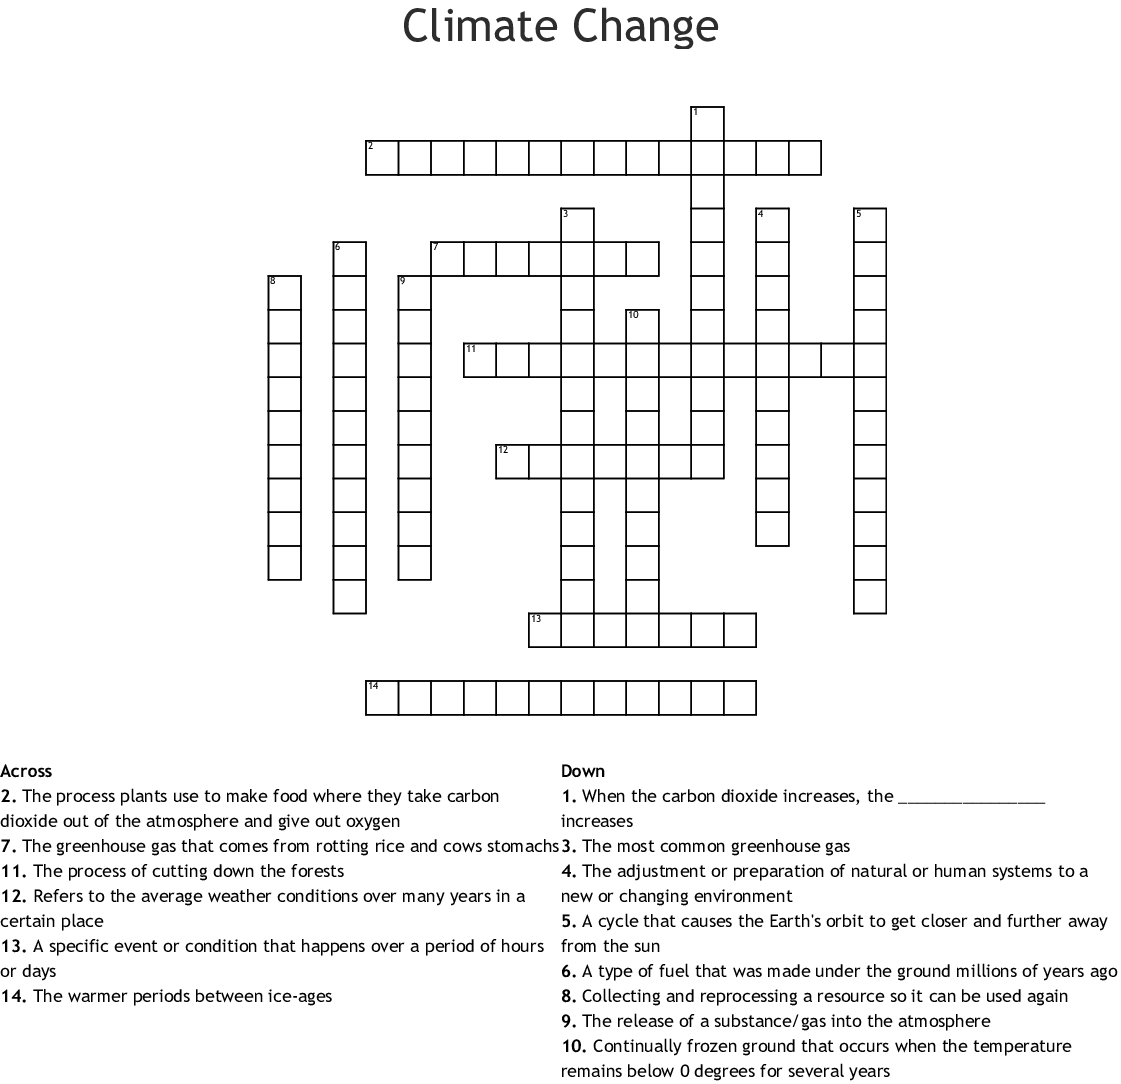 Climate Change Crossword - Wordmint - Global Warming Crossword Puzzle Printable